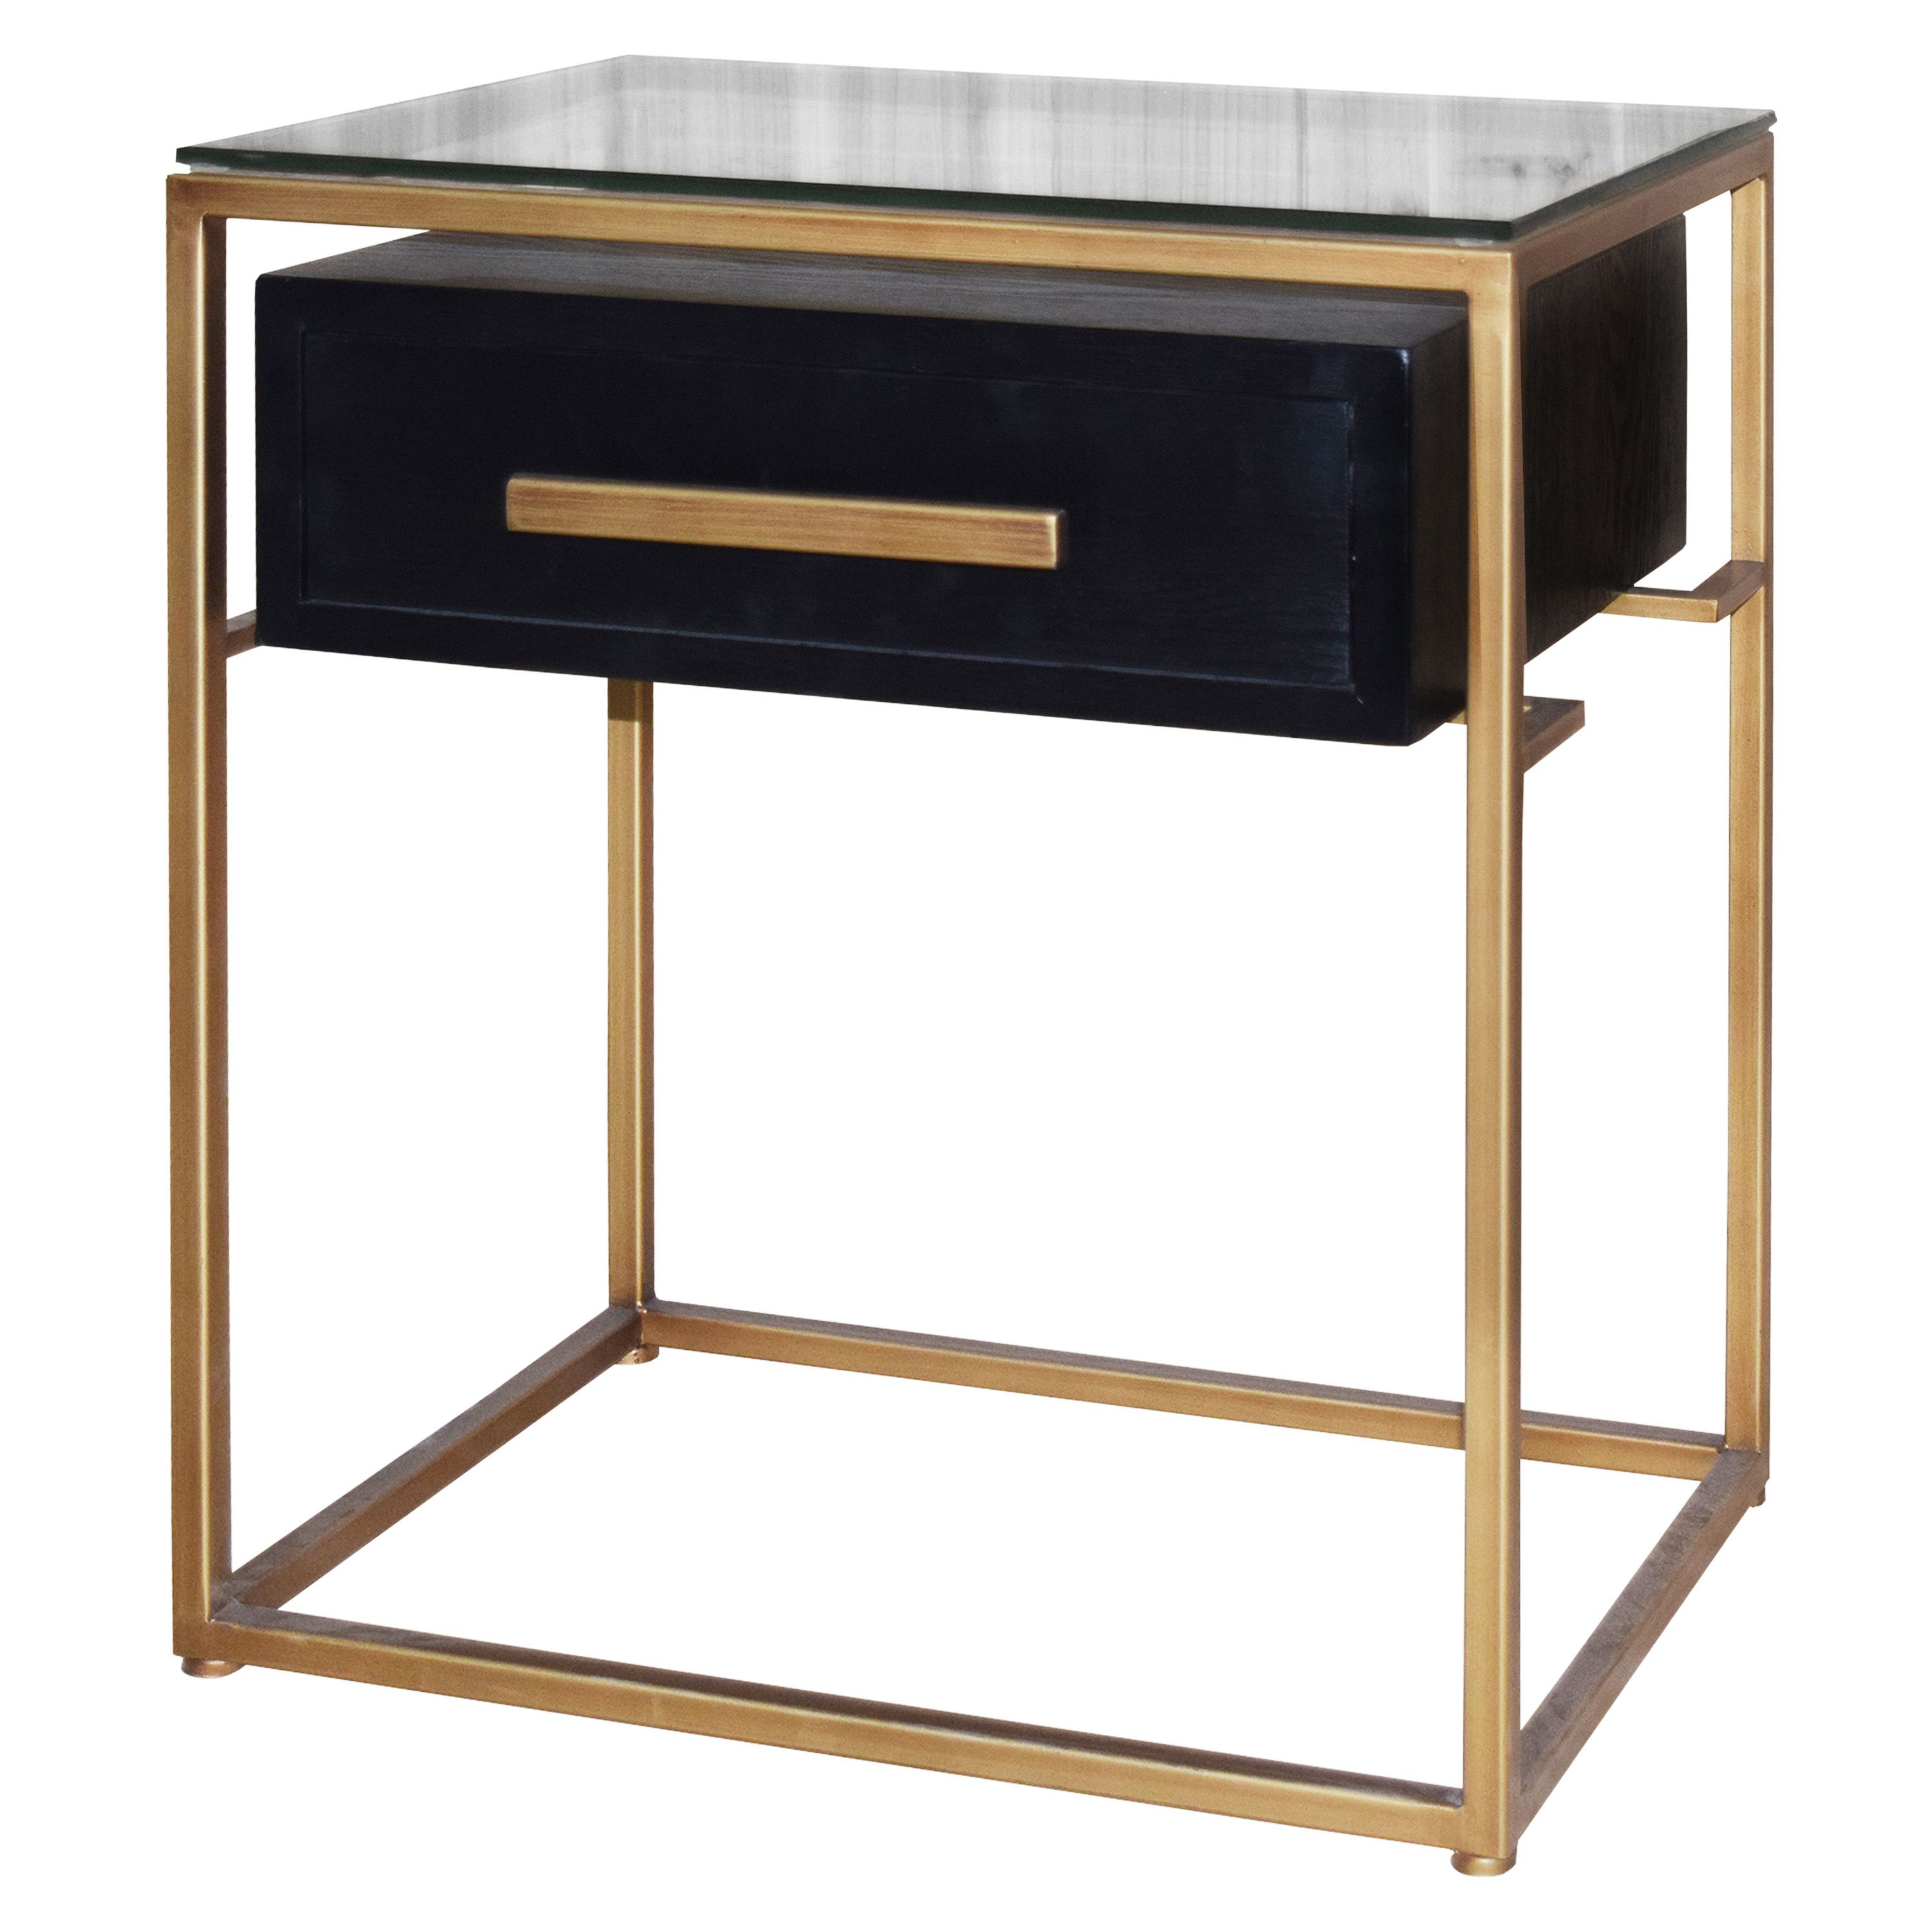 Firenze Floating End Table 1 Drawer Gold Frame In Espresso